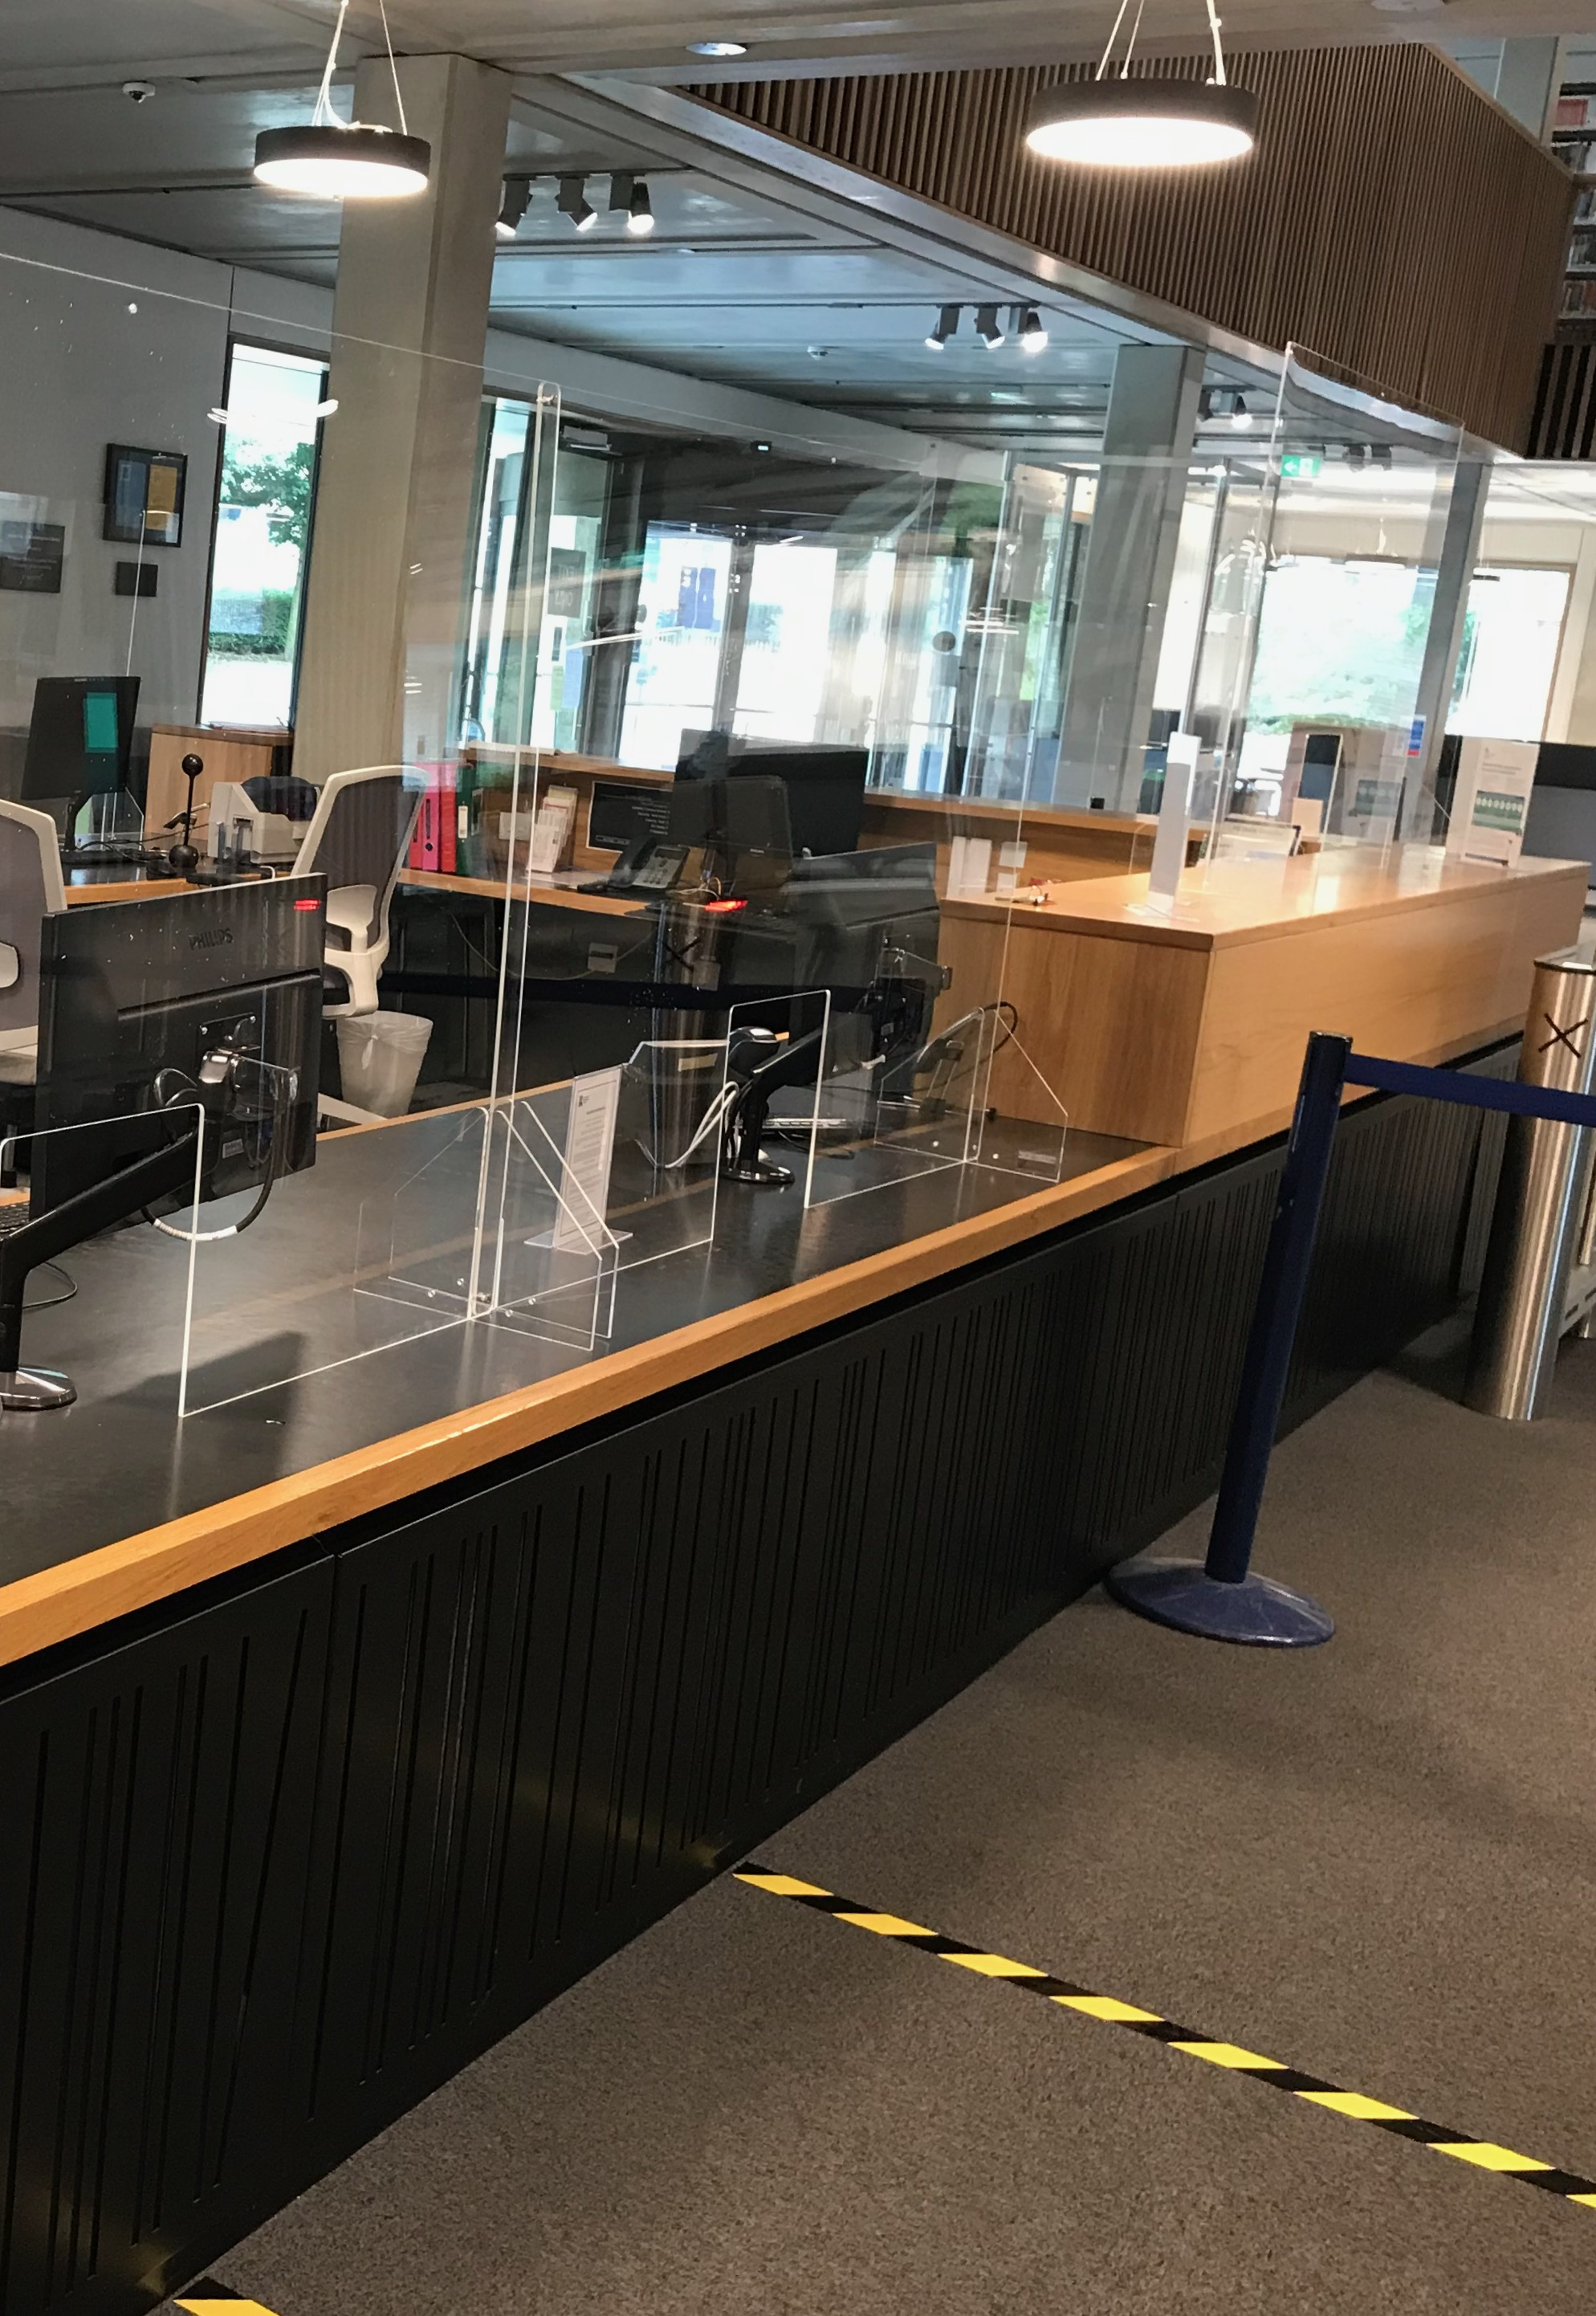 clear plastic barriers around the welcome desk to protect students and staff during social distancing